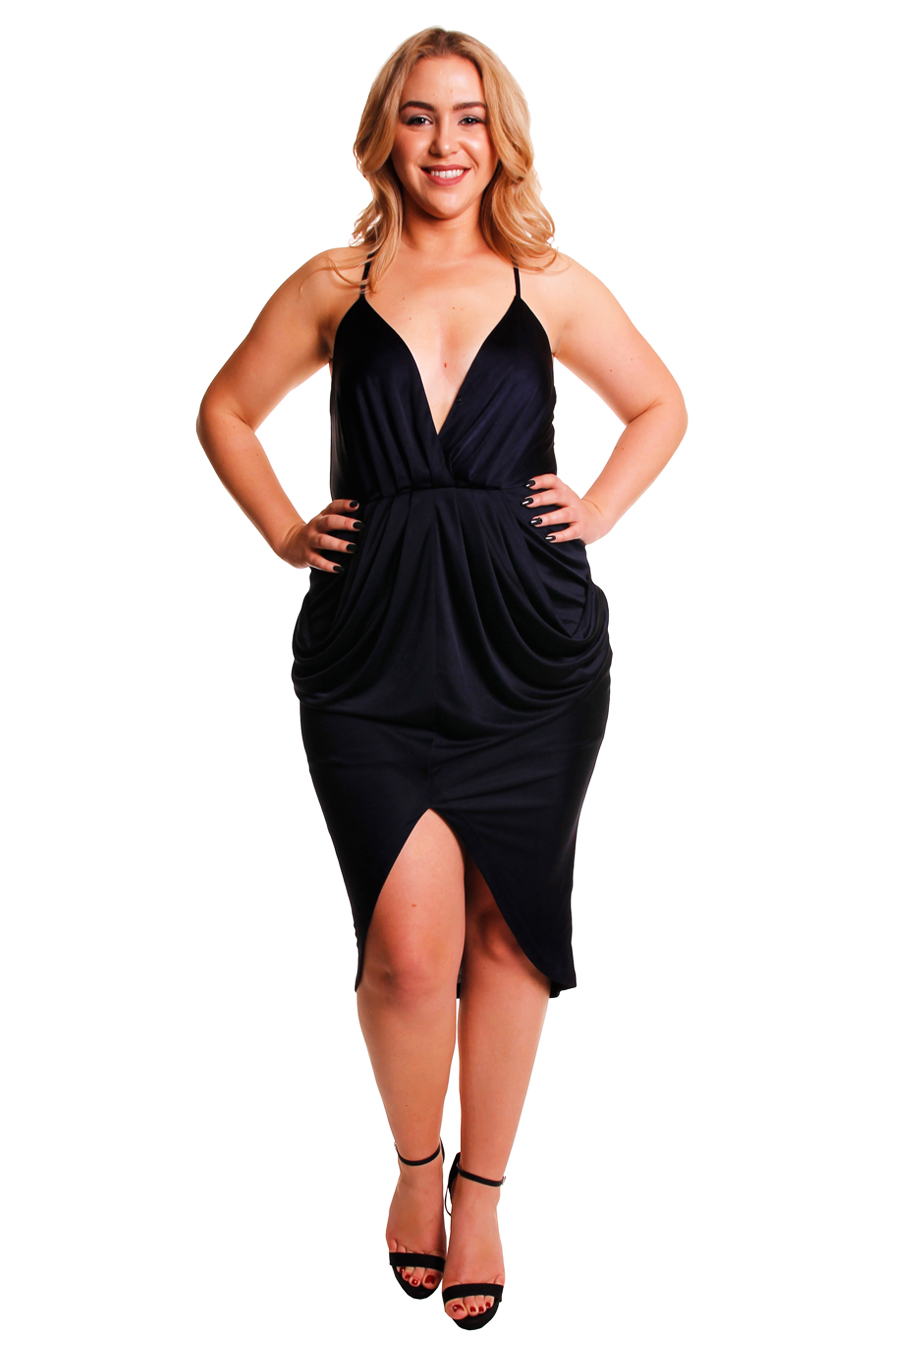 0734225c047 Sheike Navy Cocktail W T-back - Perth Dress Hire - My Sisters Boudoir